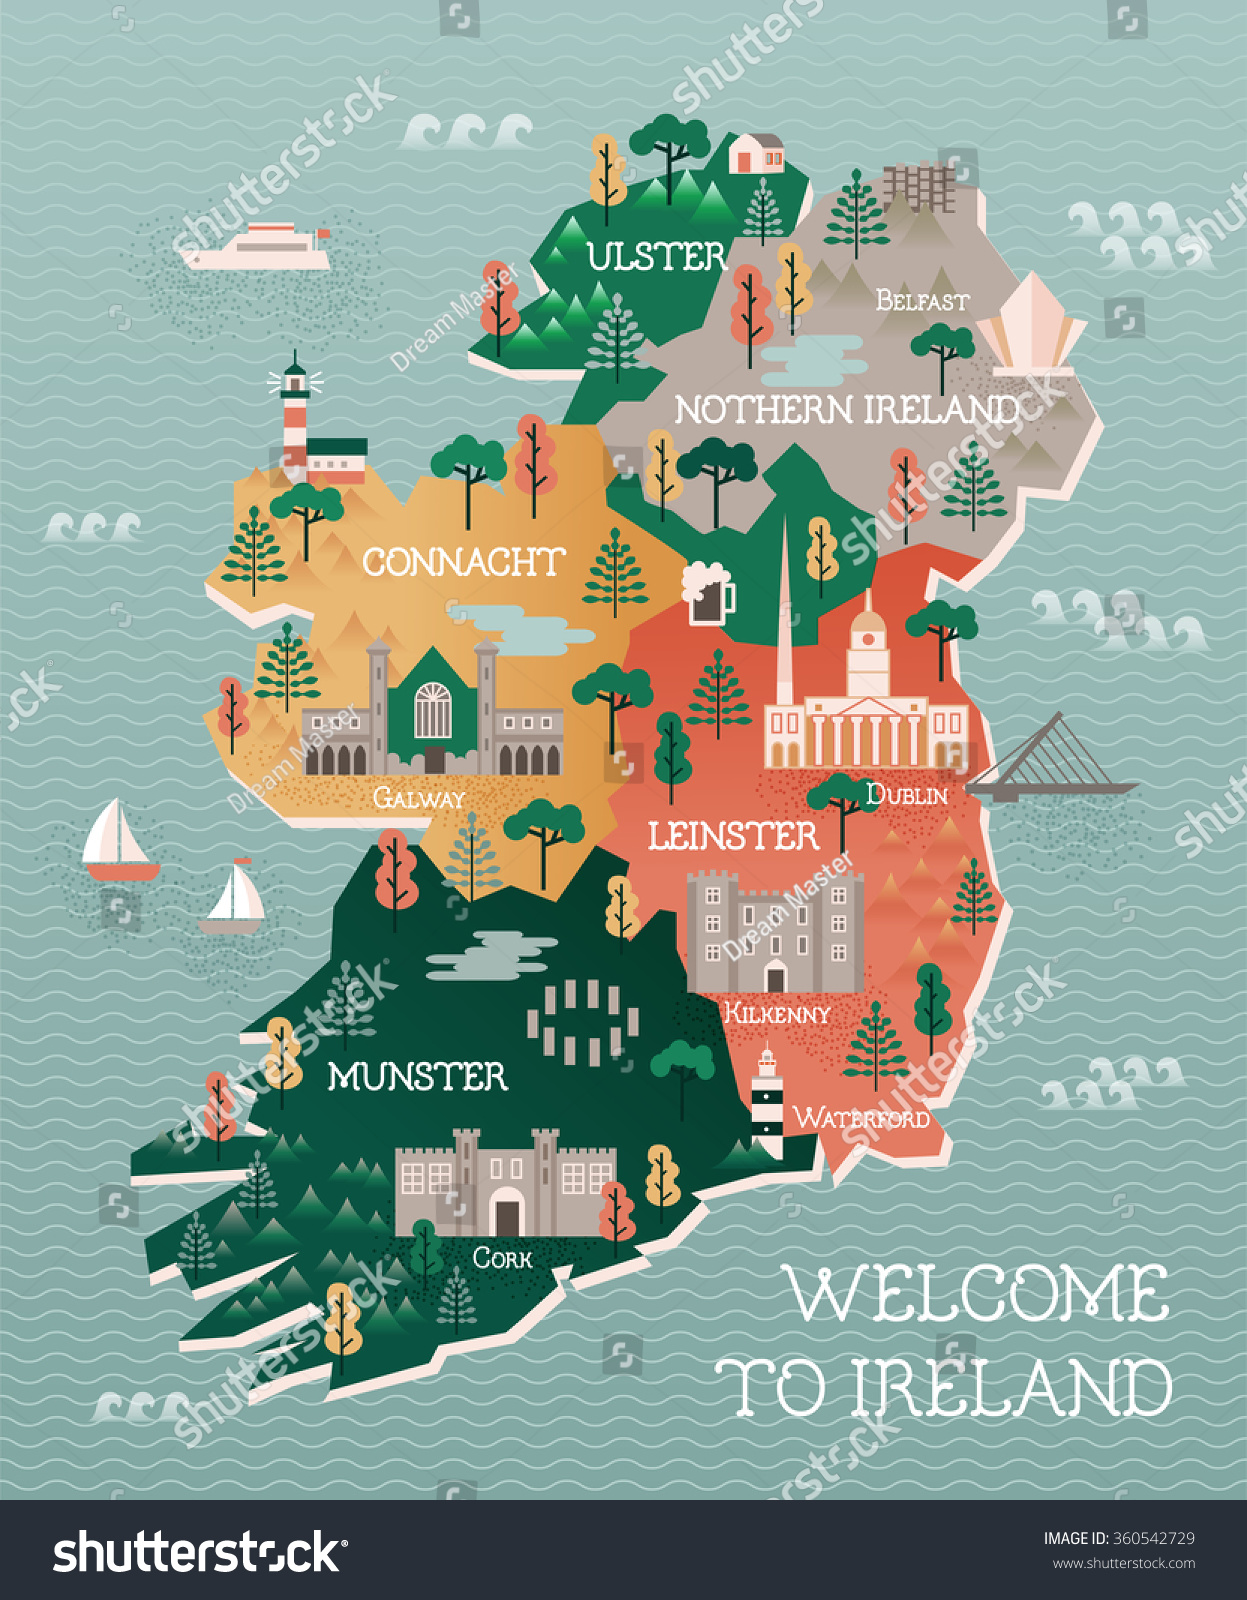 Map Of Ireland Poster.Travel Map Ireland Landmarks Cities Stock Vector Royalty Free